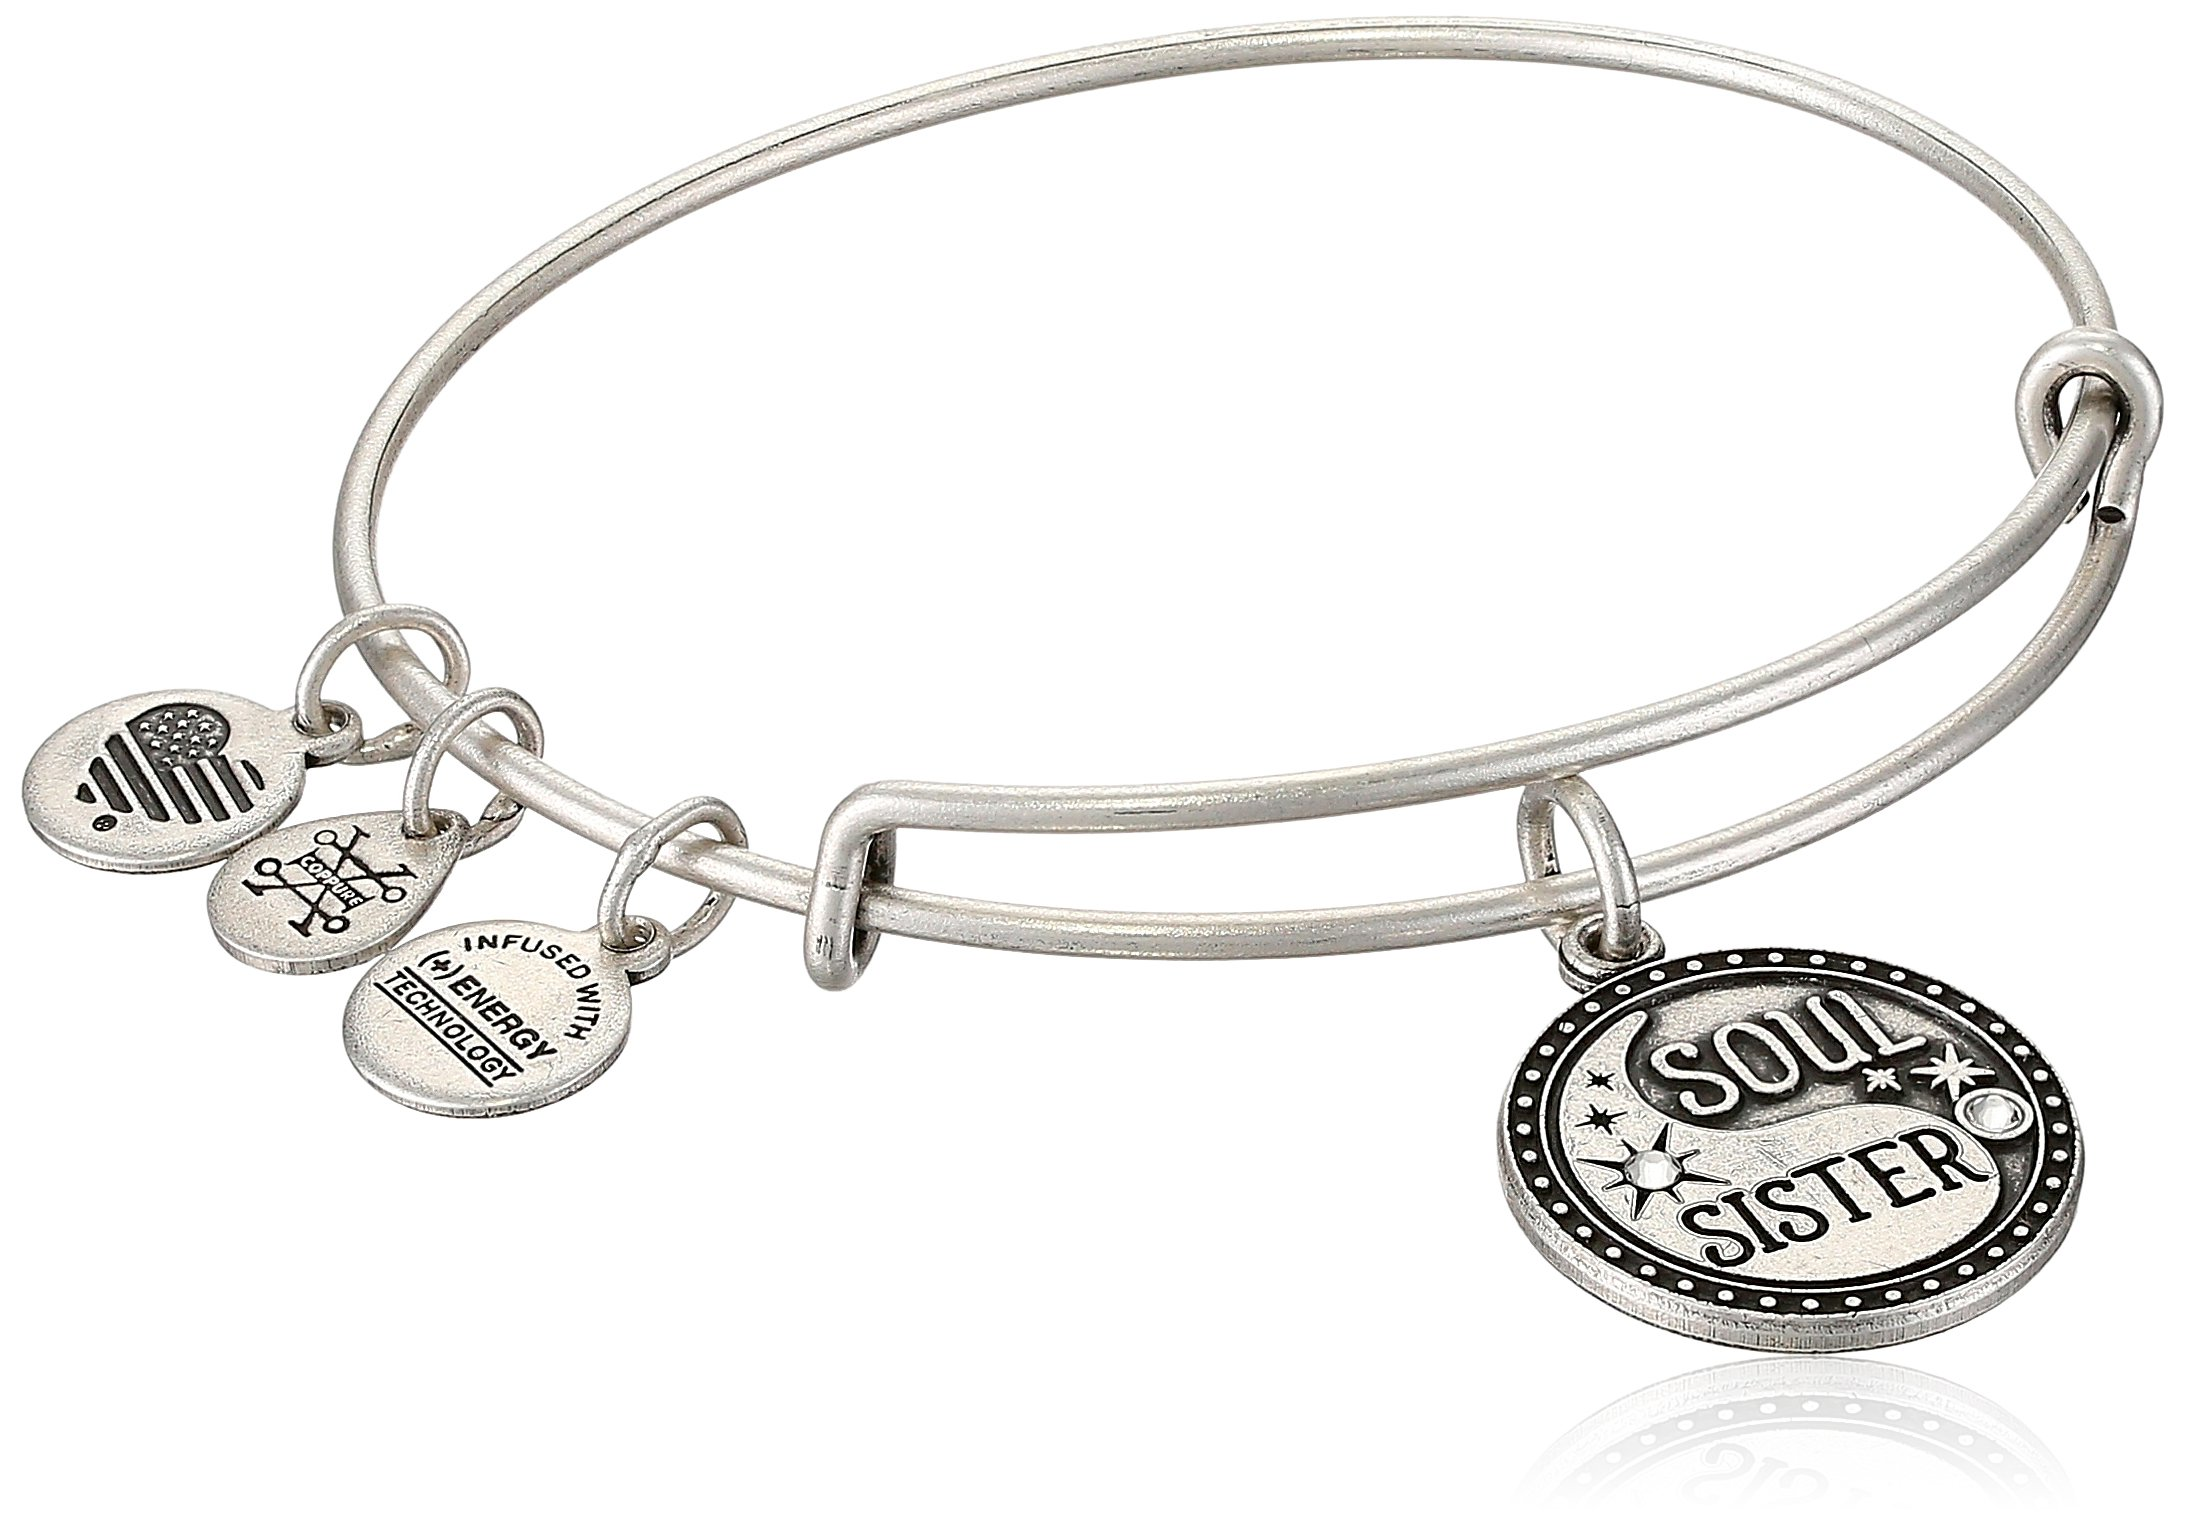 Alex and Ani Womens Soul Sister EWB Bangle Bracelet, Rafaelian Silver, Expandable